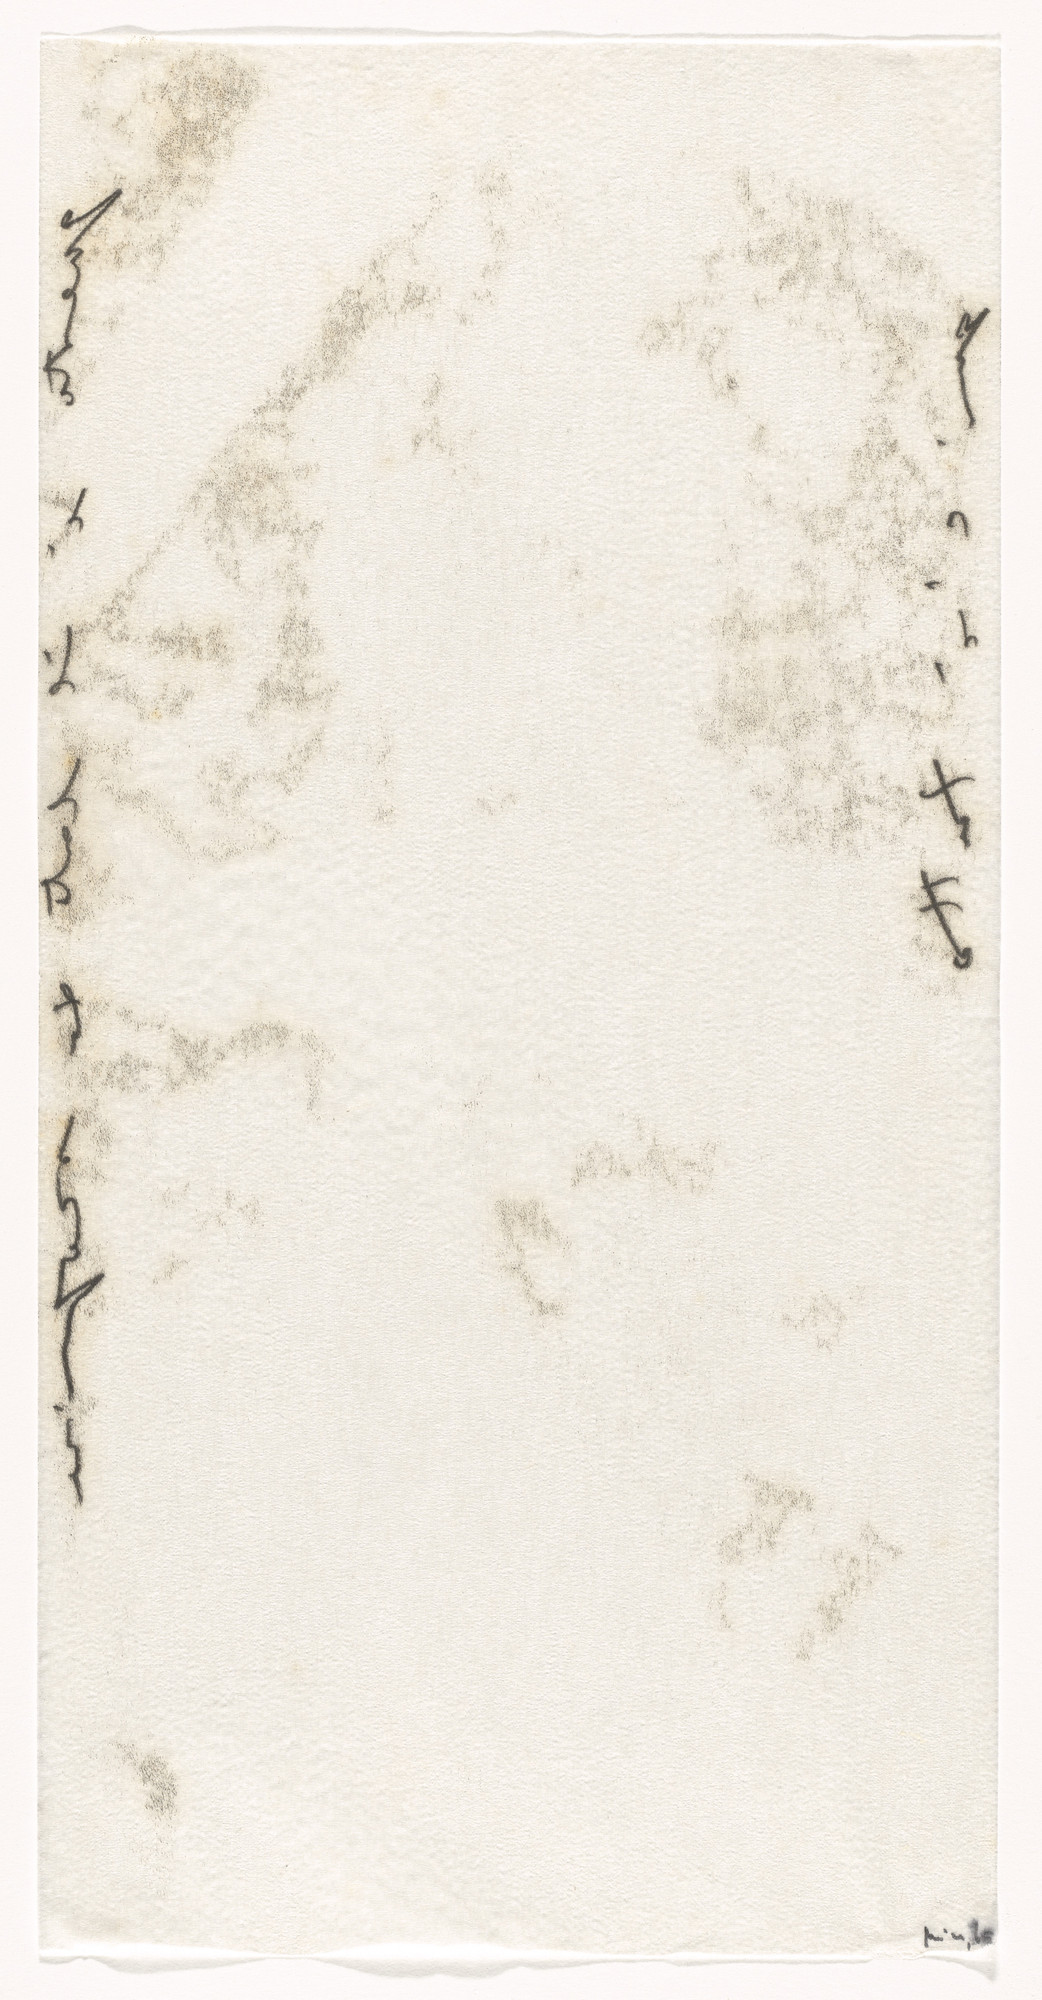 Mira Schendel. Untitled. 1965